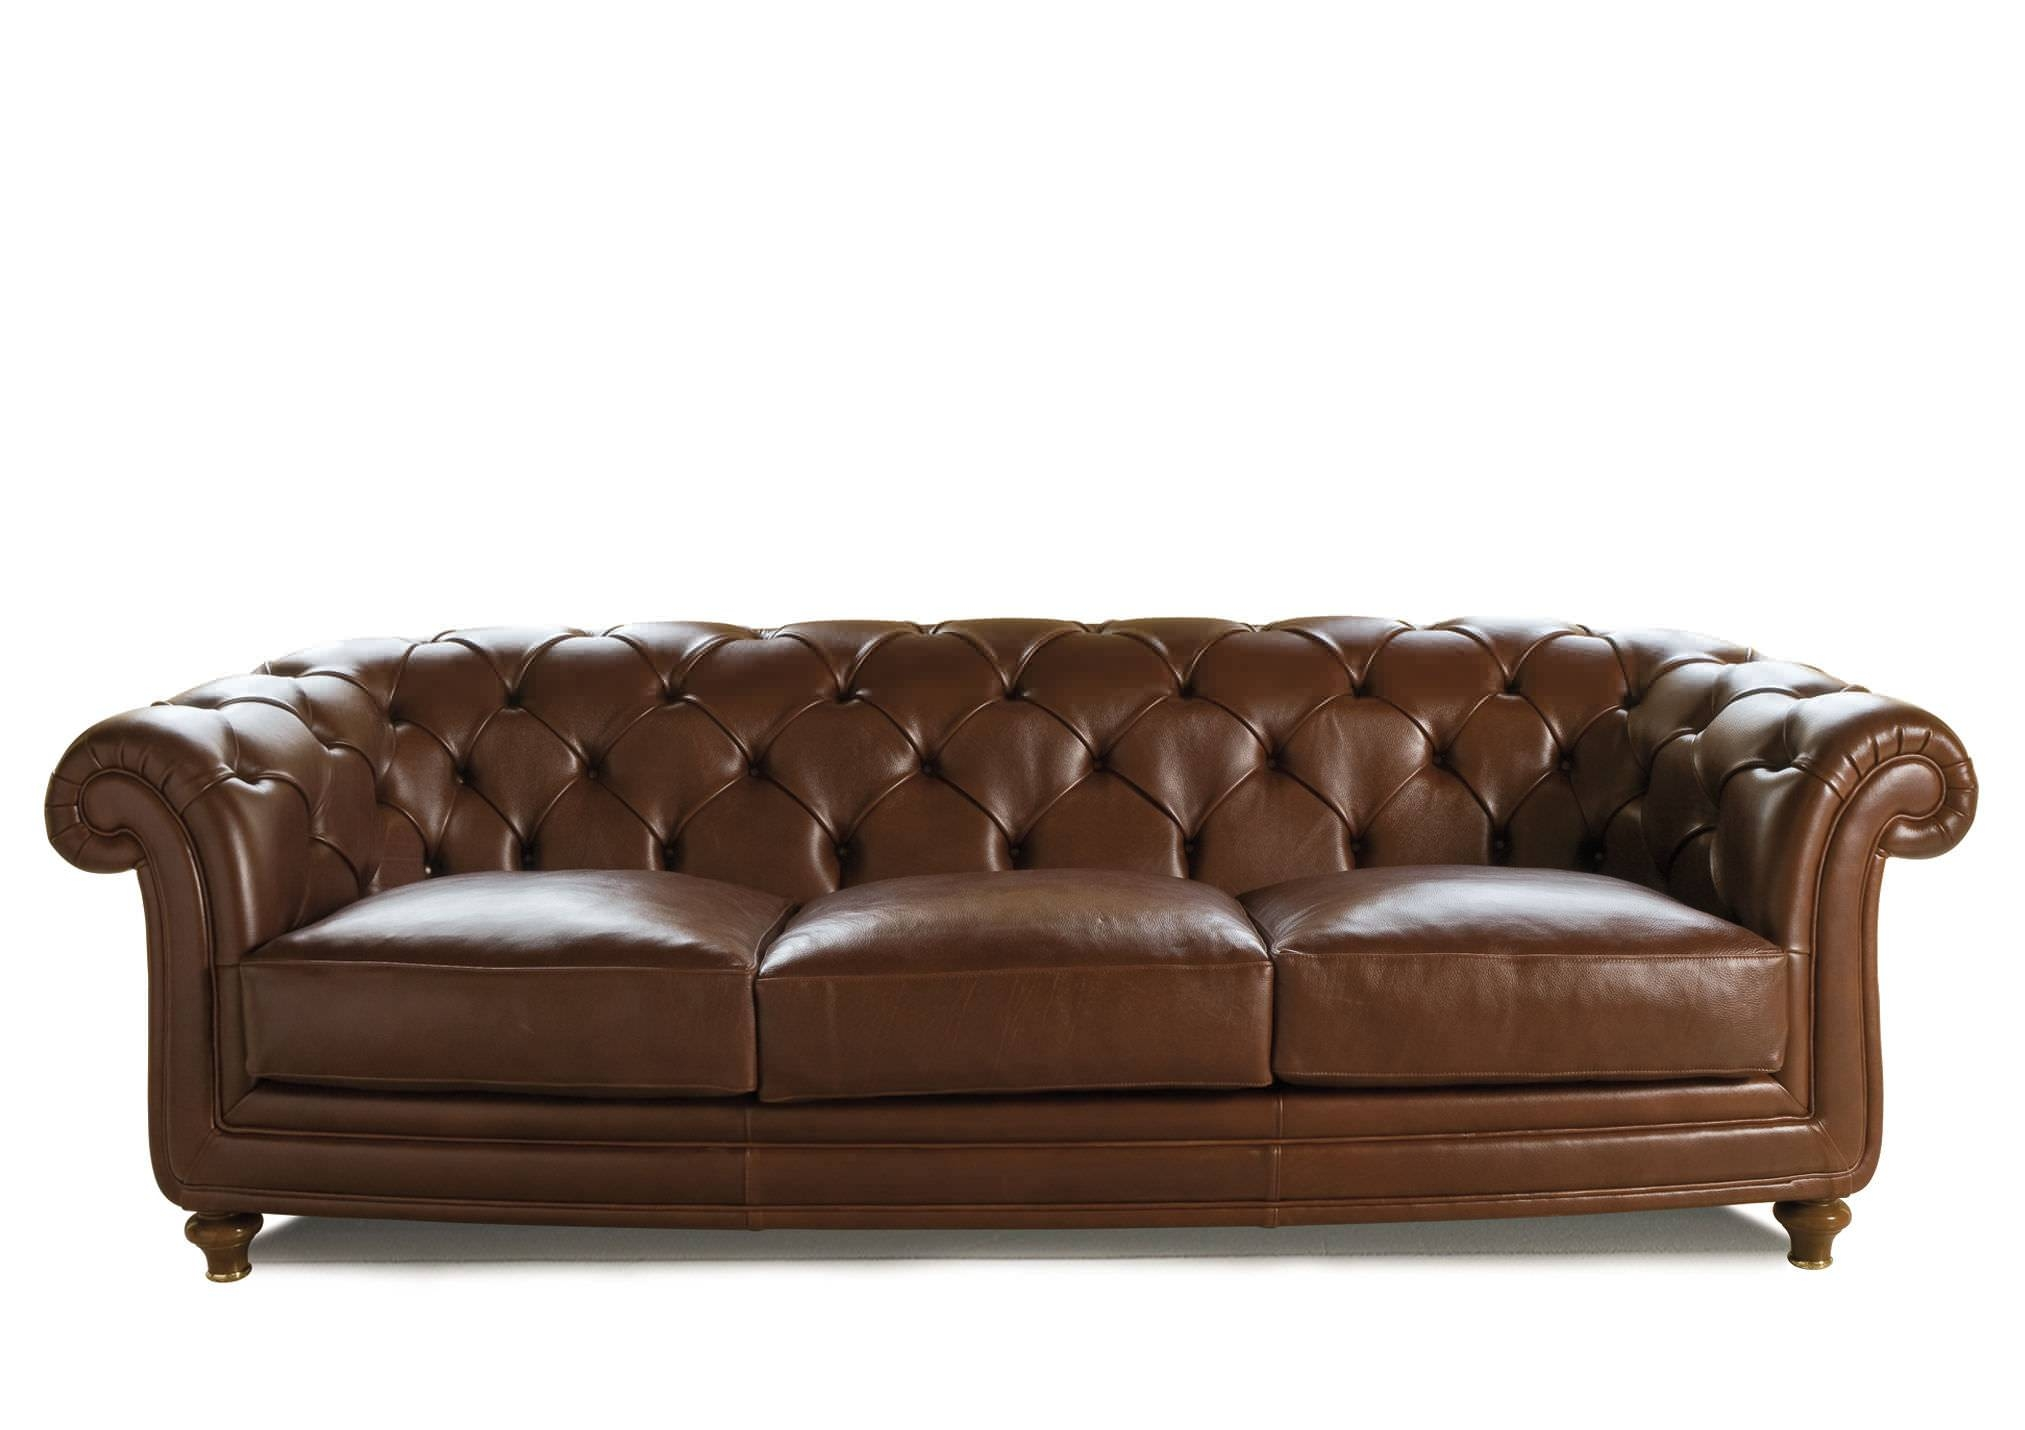 Chesterfield Sofa / Leather / Fabric / 3-Seater - Oxford - Berto with regard to Oxford Sofas (Image 7 of 30)